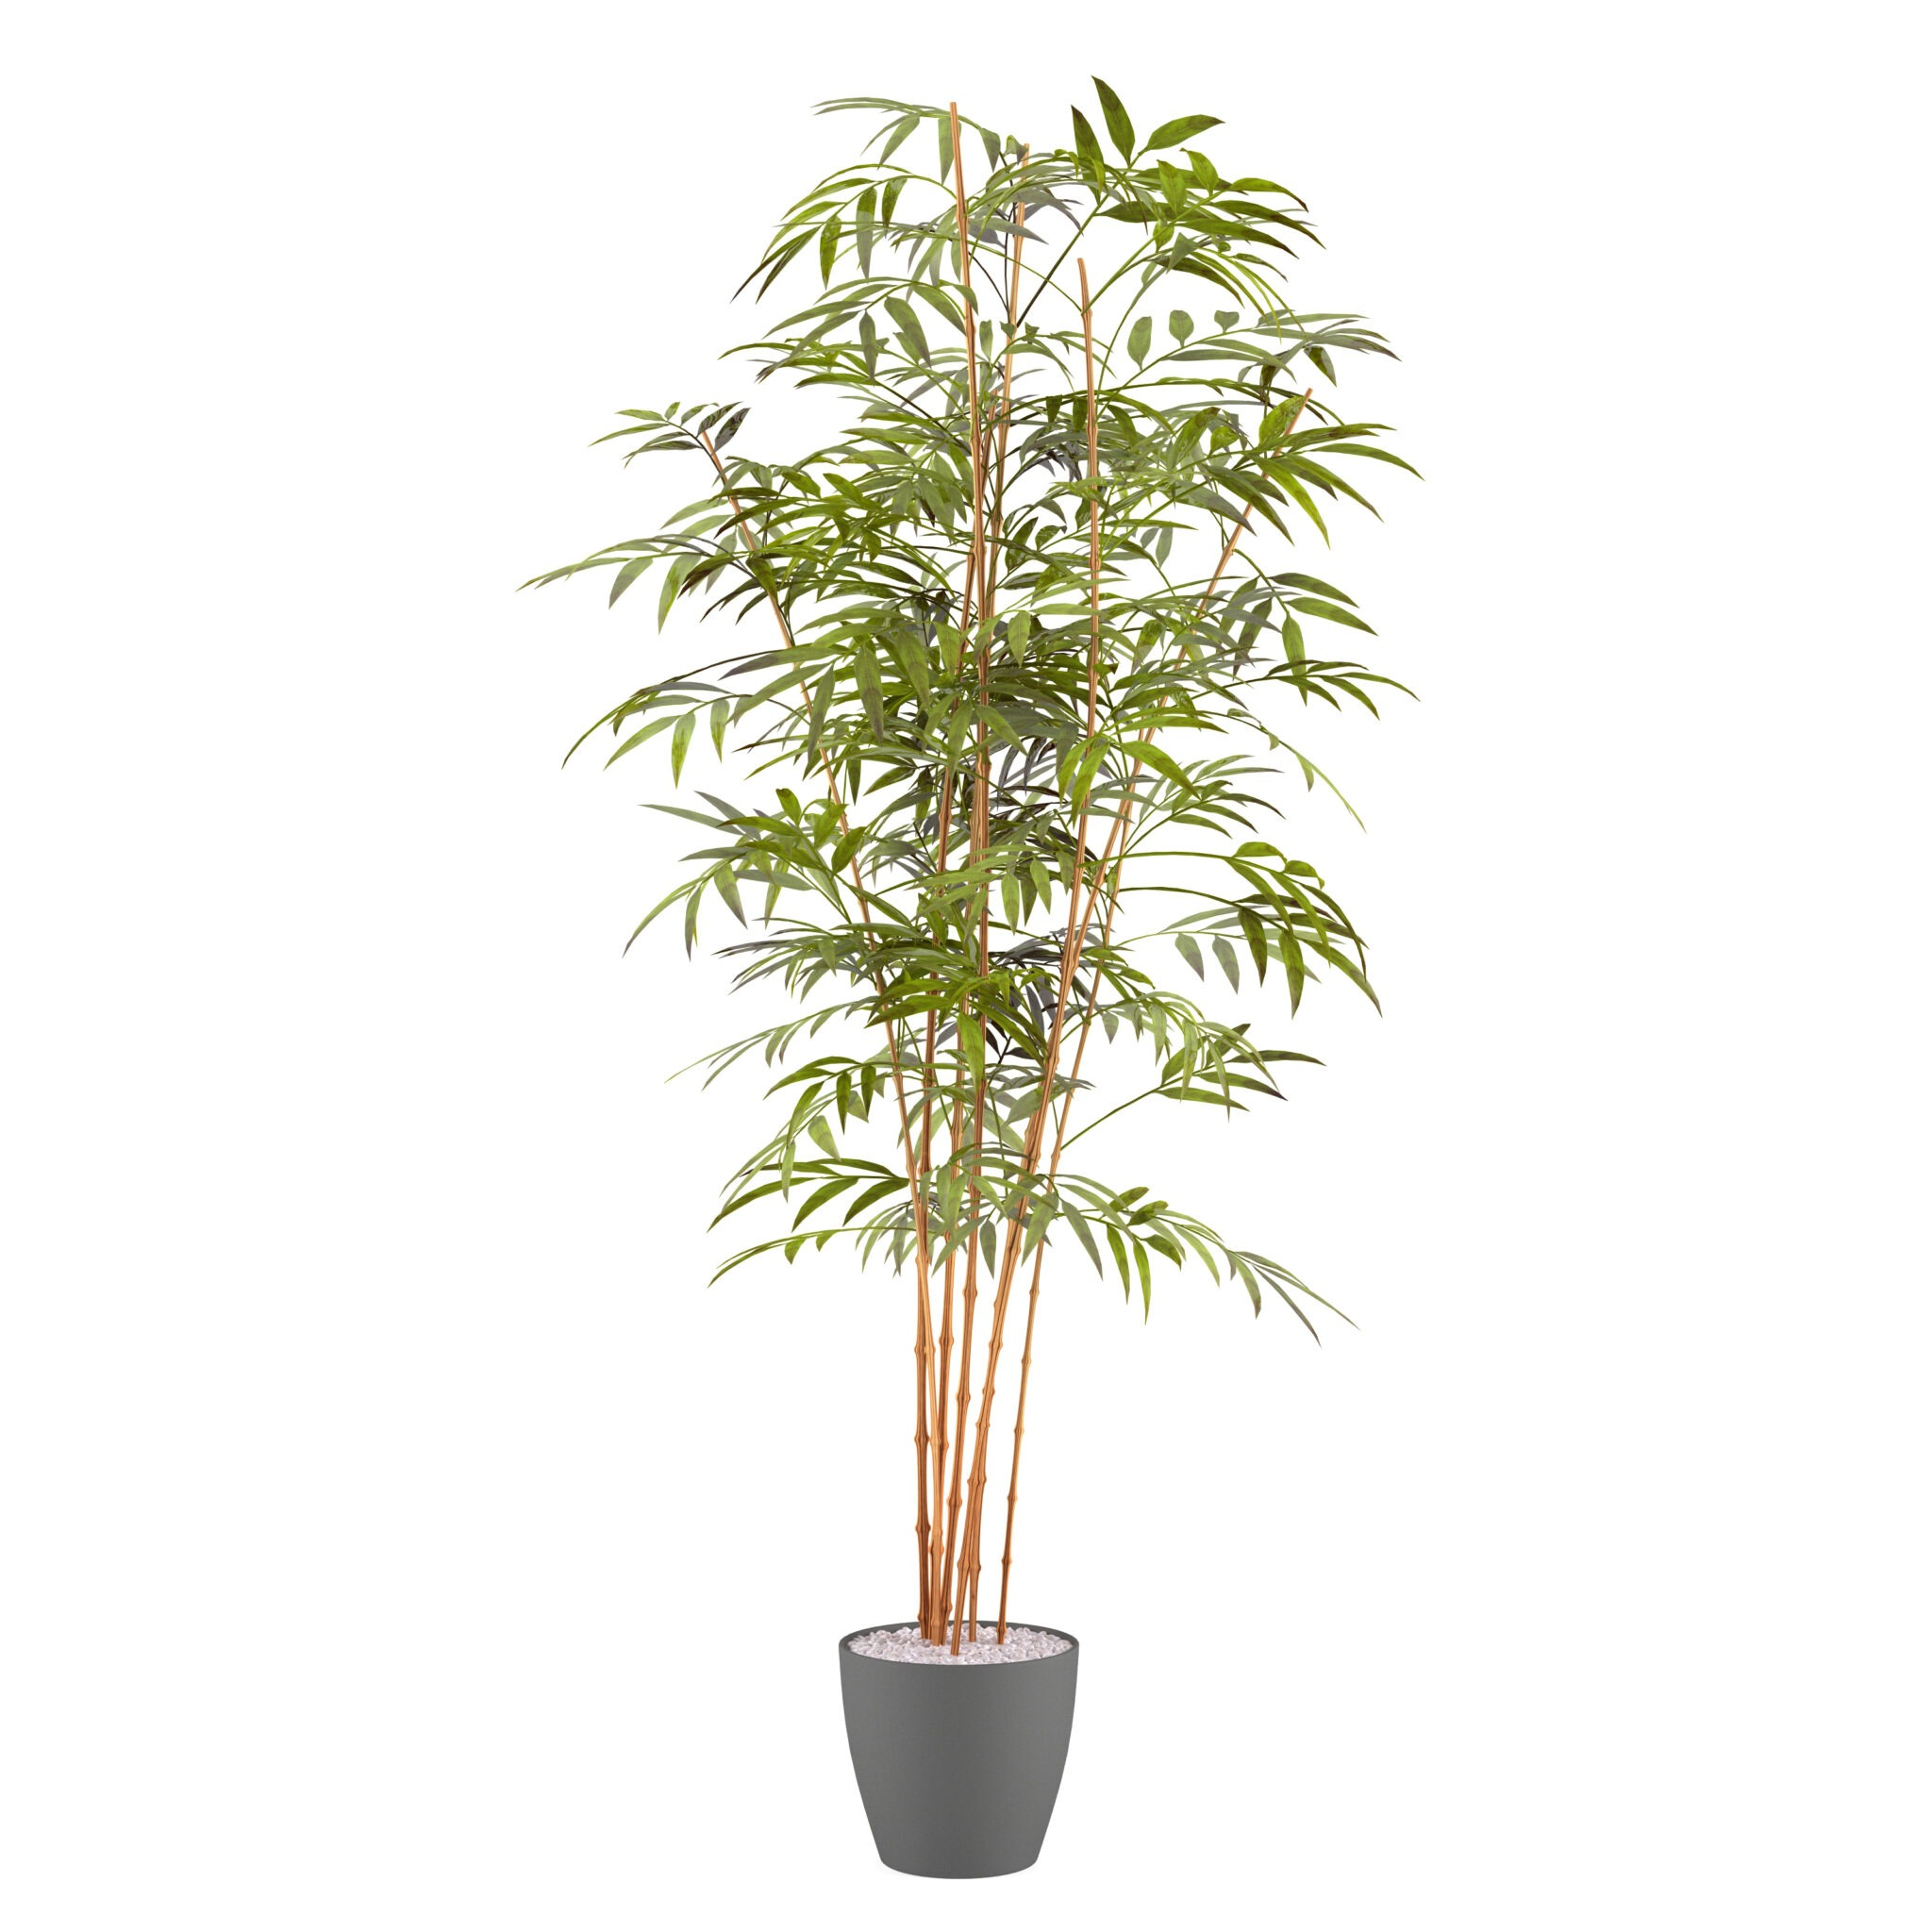 bamboo palm health benefits and air purification